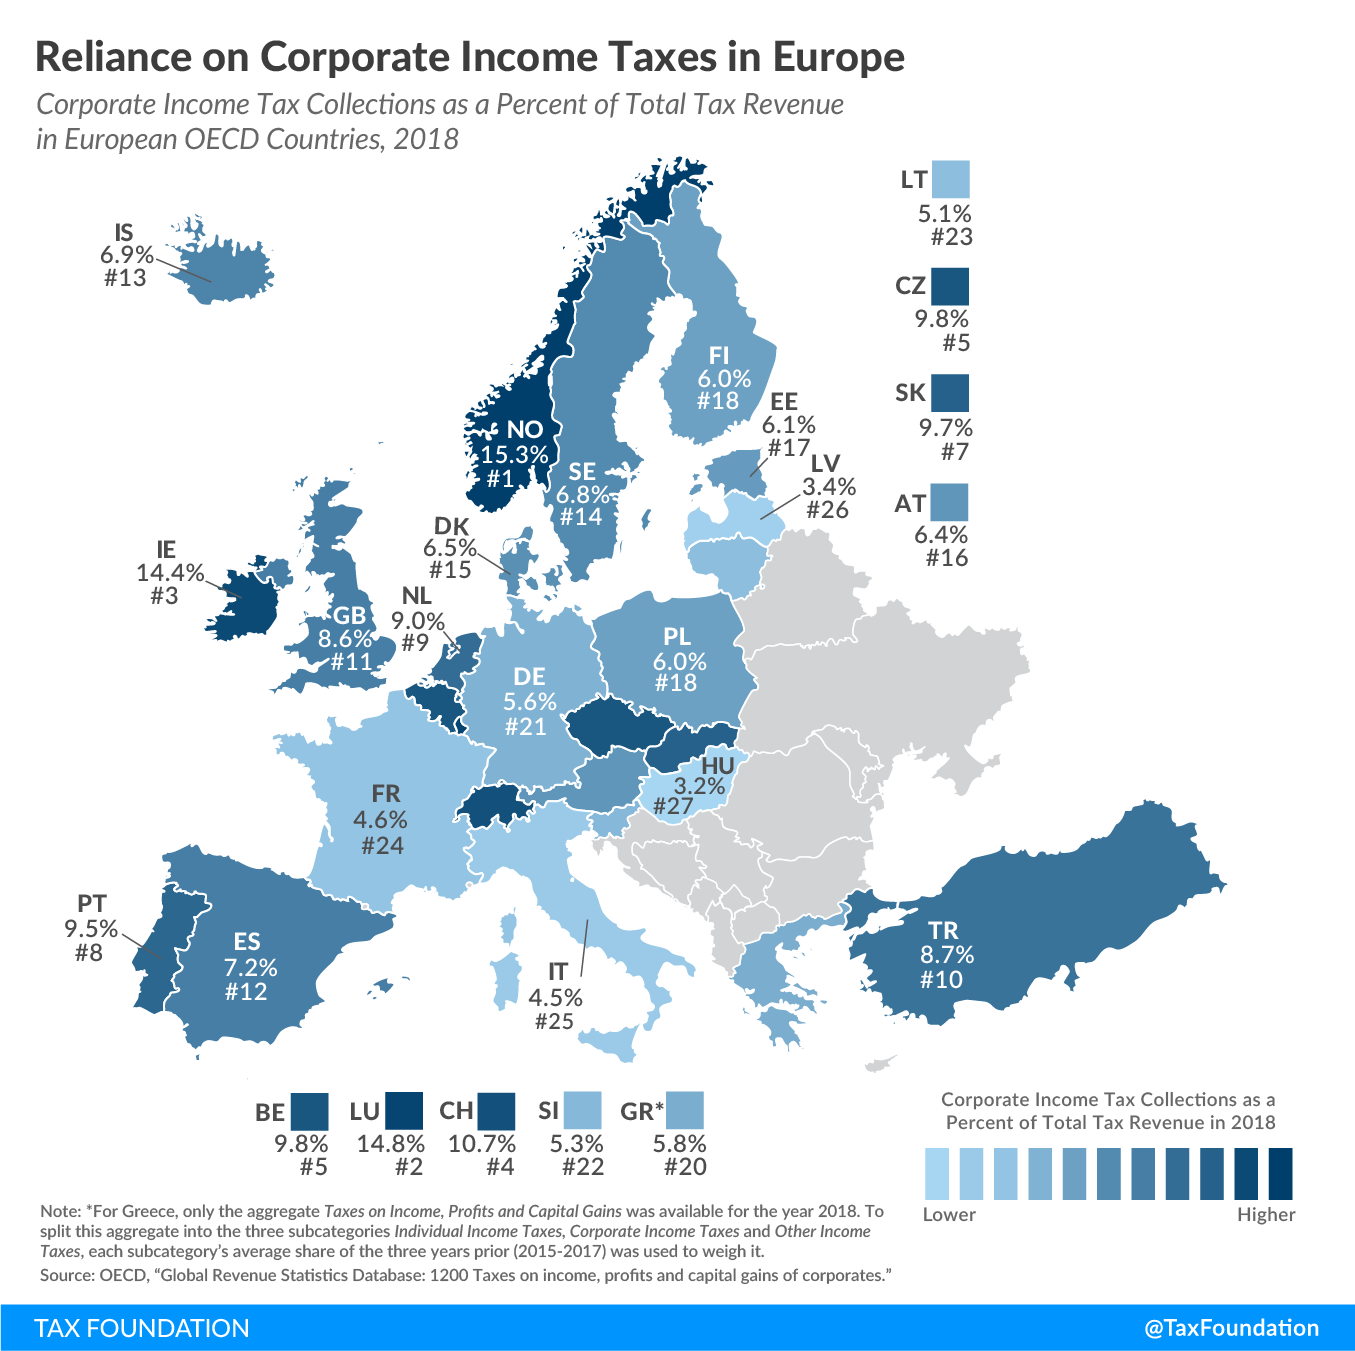 Reliance on corporate tax revenue in Europe, reliance on corporate taxes in Europe, UK tax revenue reliance